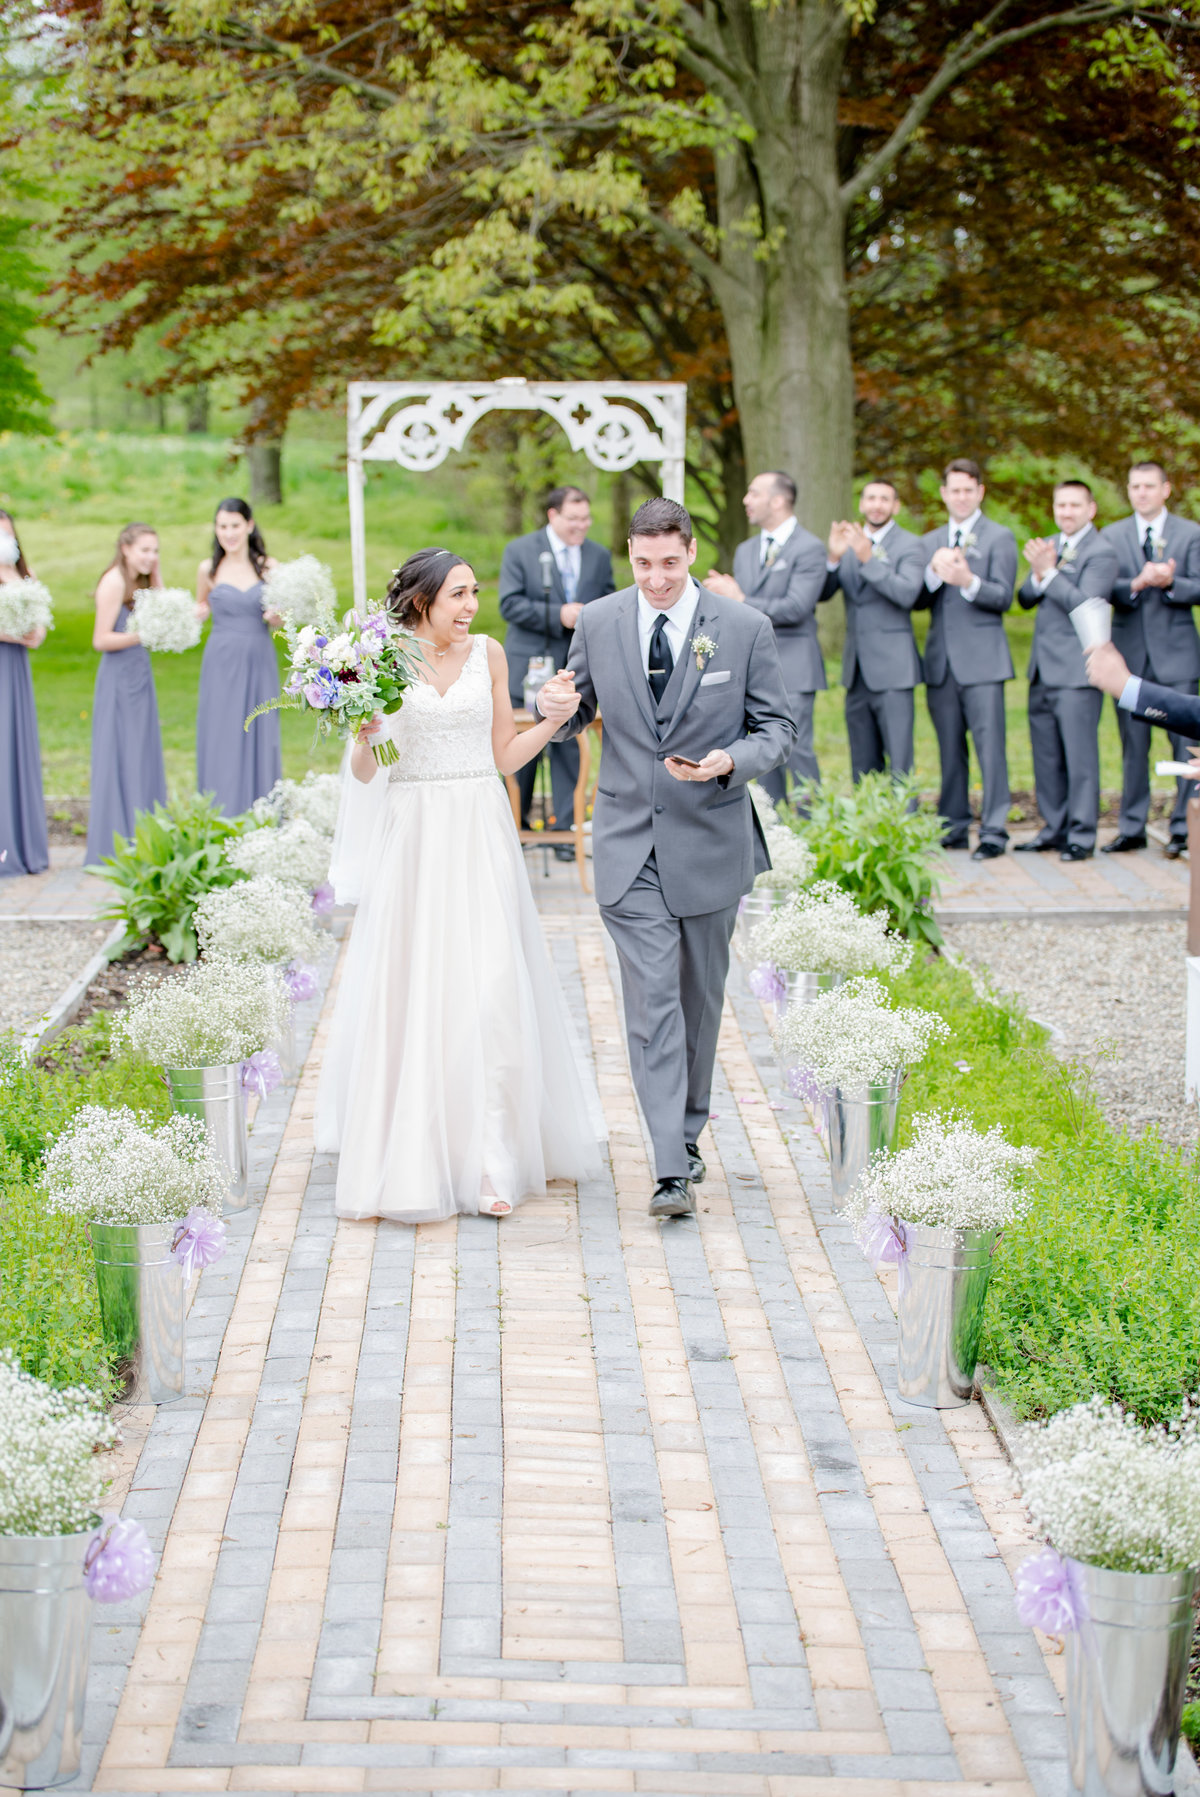 Rustic Barn Wedding Pennsylvania-Rodale Institute Wedding Raquel and Daniel Wedding 22339-40